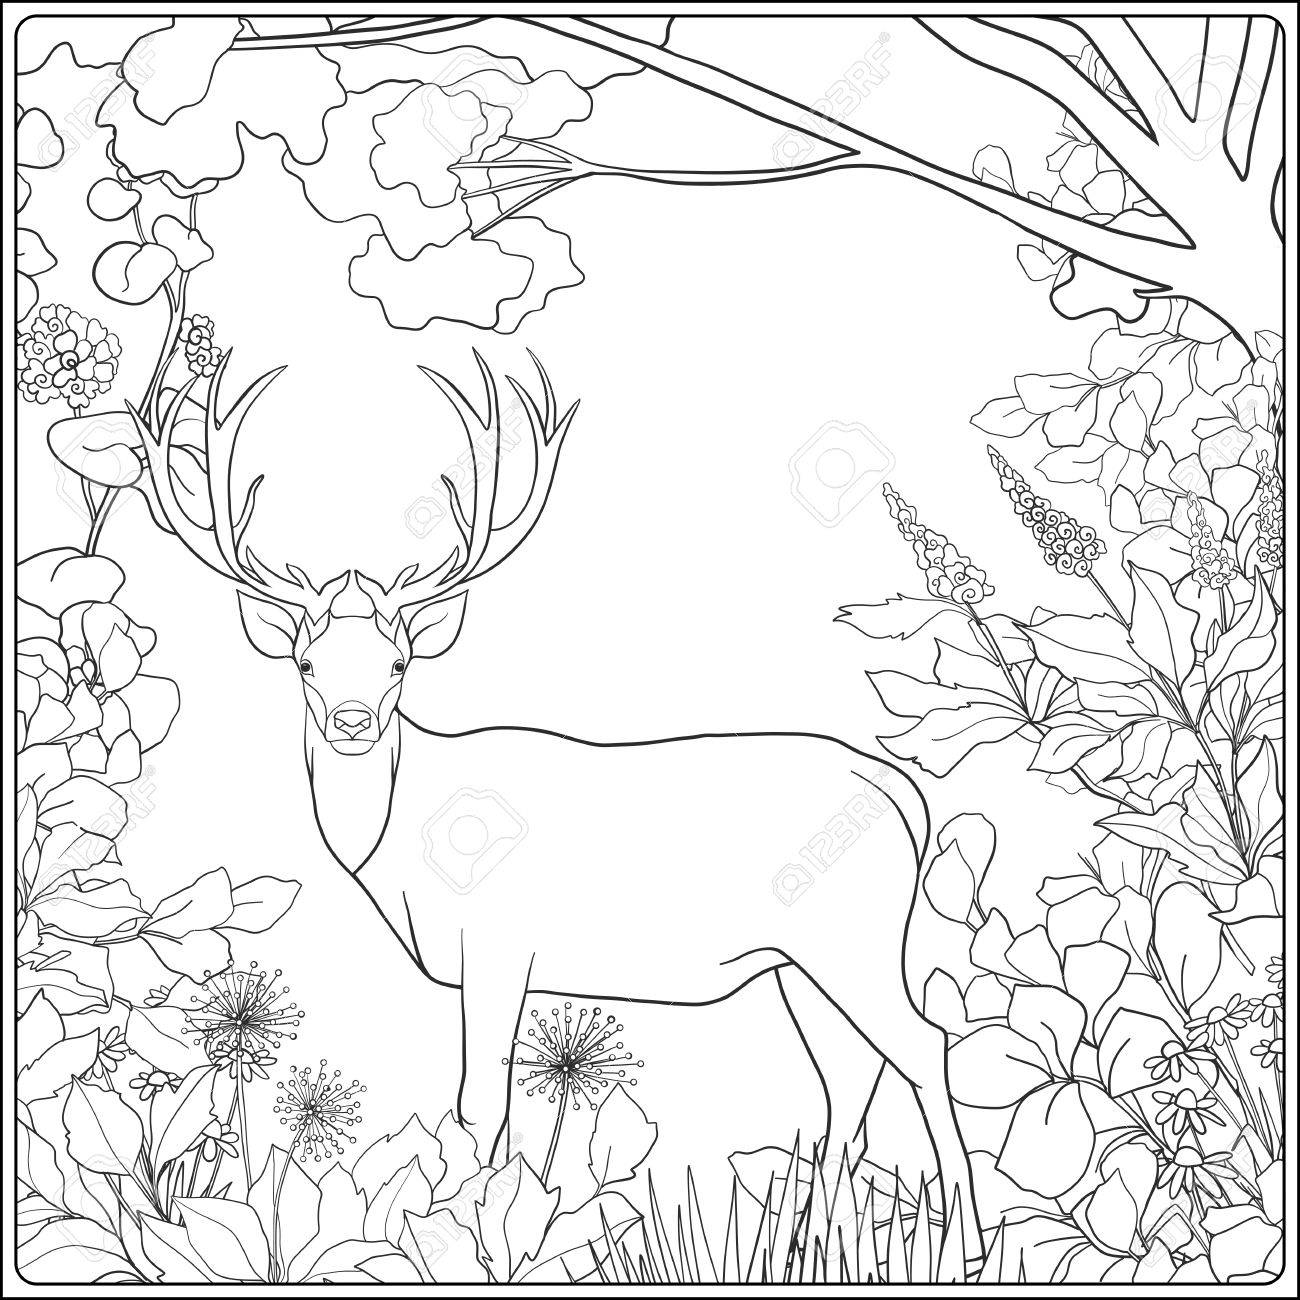 1300x1300 Coloring Page With Deer In Forest. Coloring Book For Adult